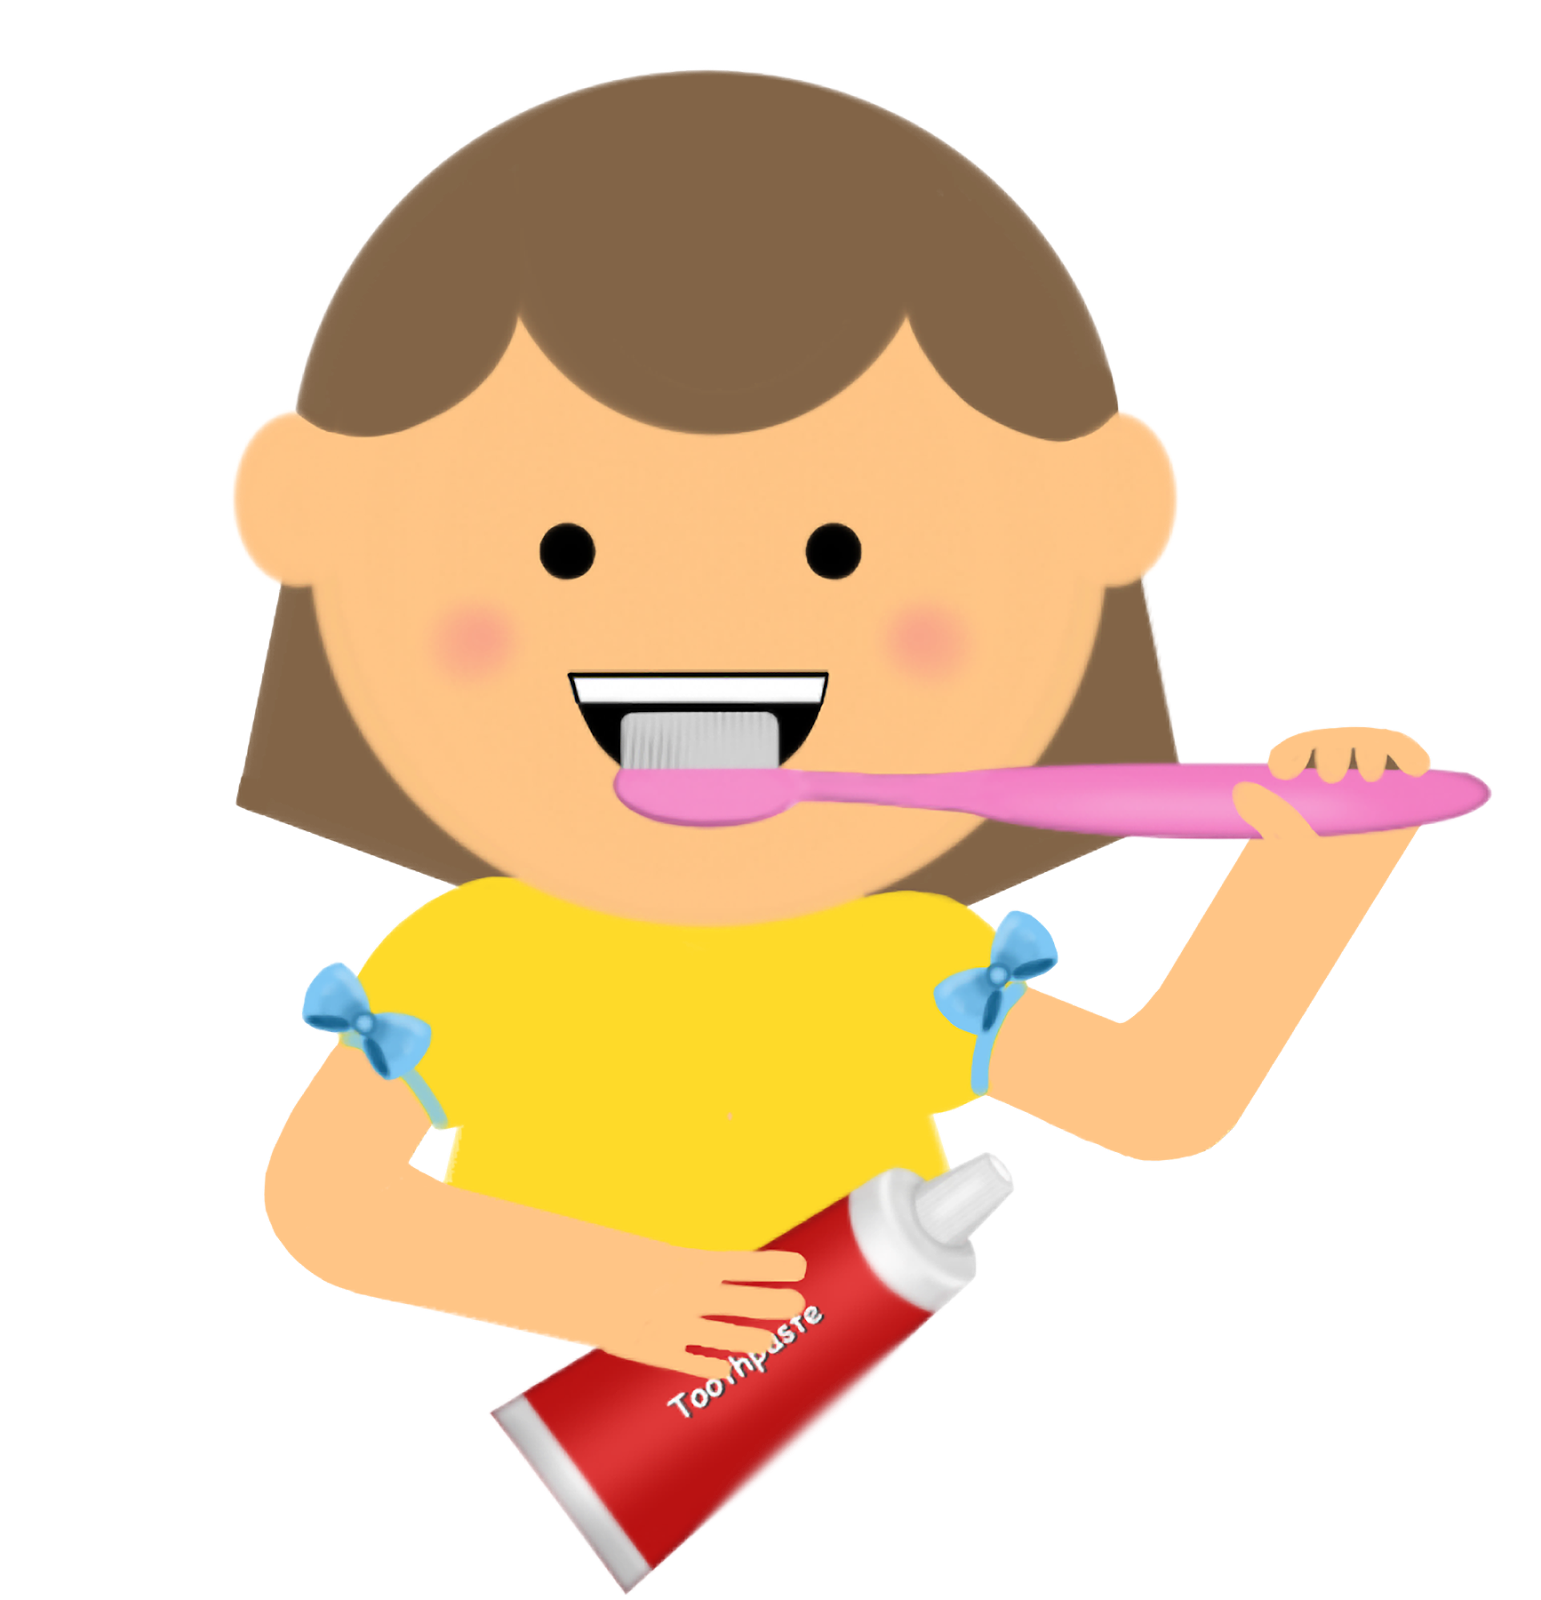 Kids brushing teeth clipart clipart images gallery for free download.